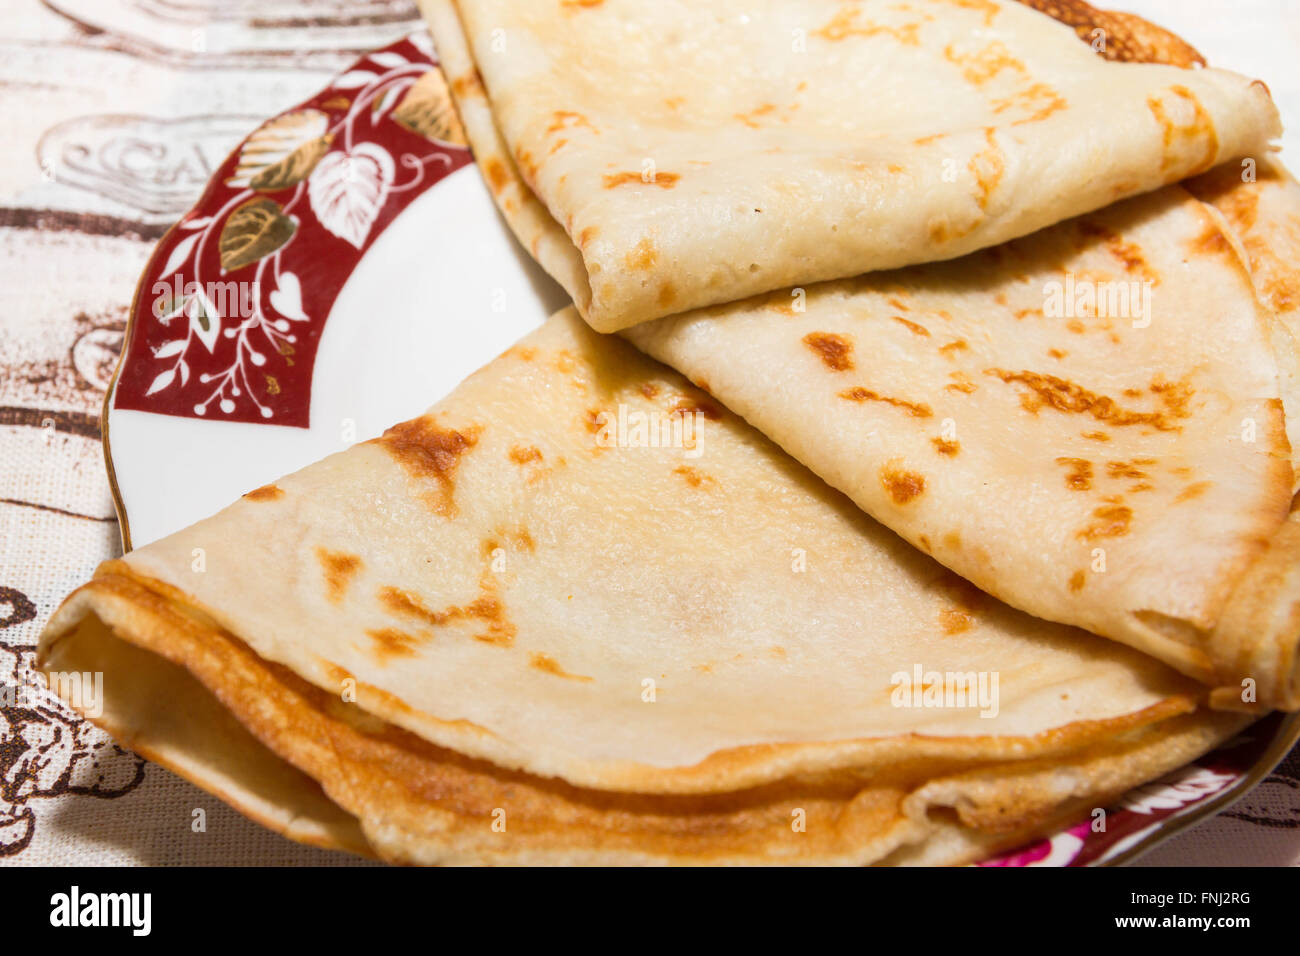 Pancakes for Breakfast - Stock Image